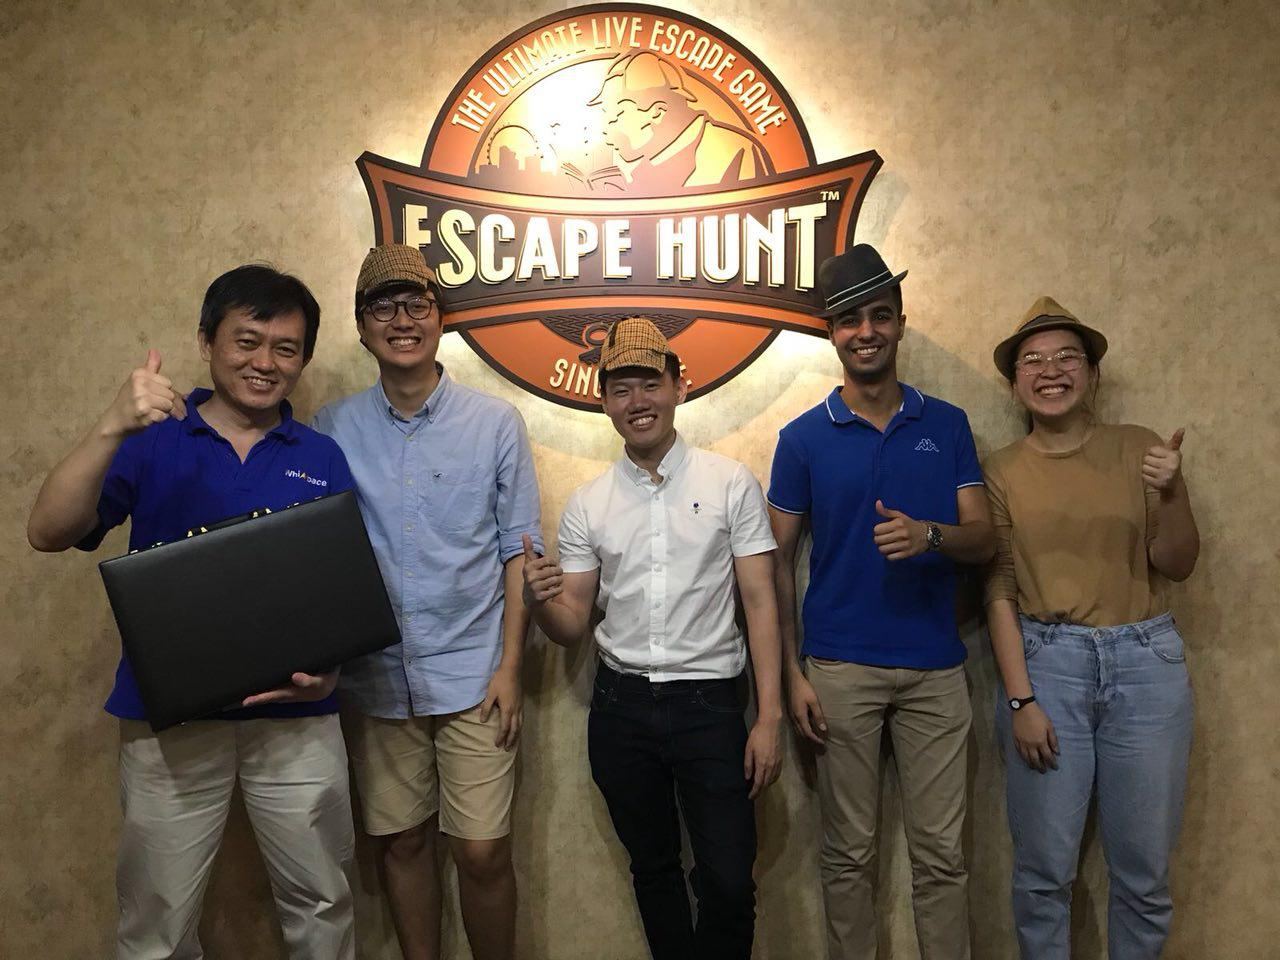 Company outing at Escape hunt